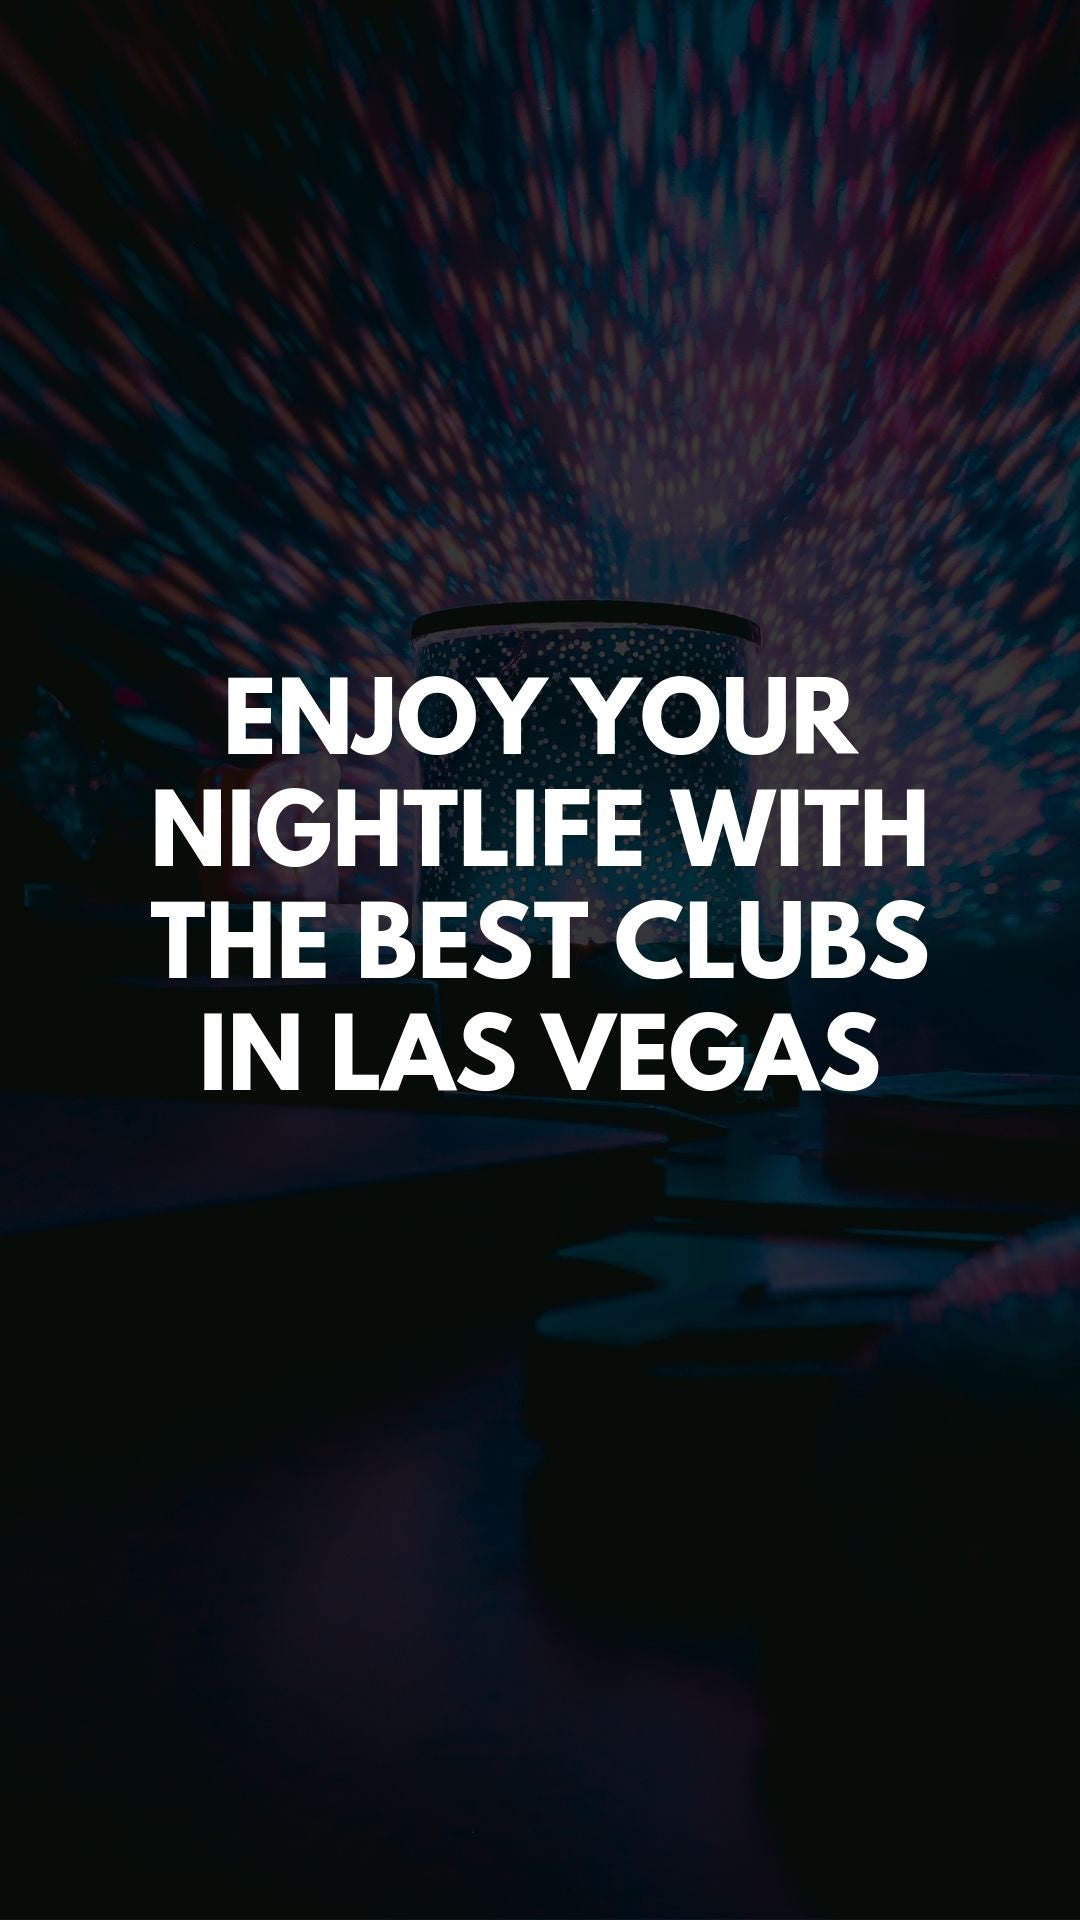 Enjoy Your Nightlife With The Best Clubs In Las Vegas